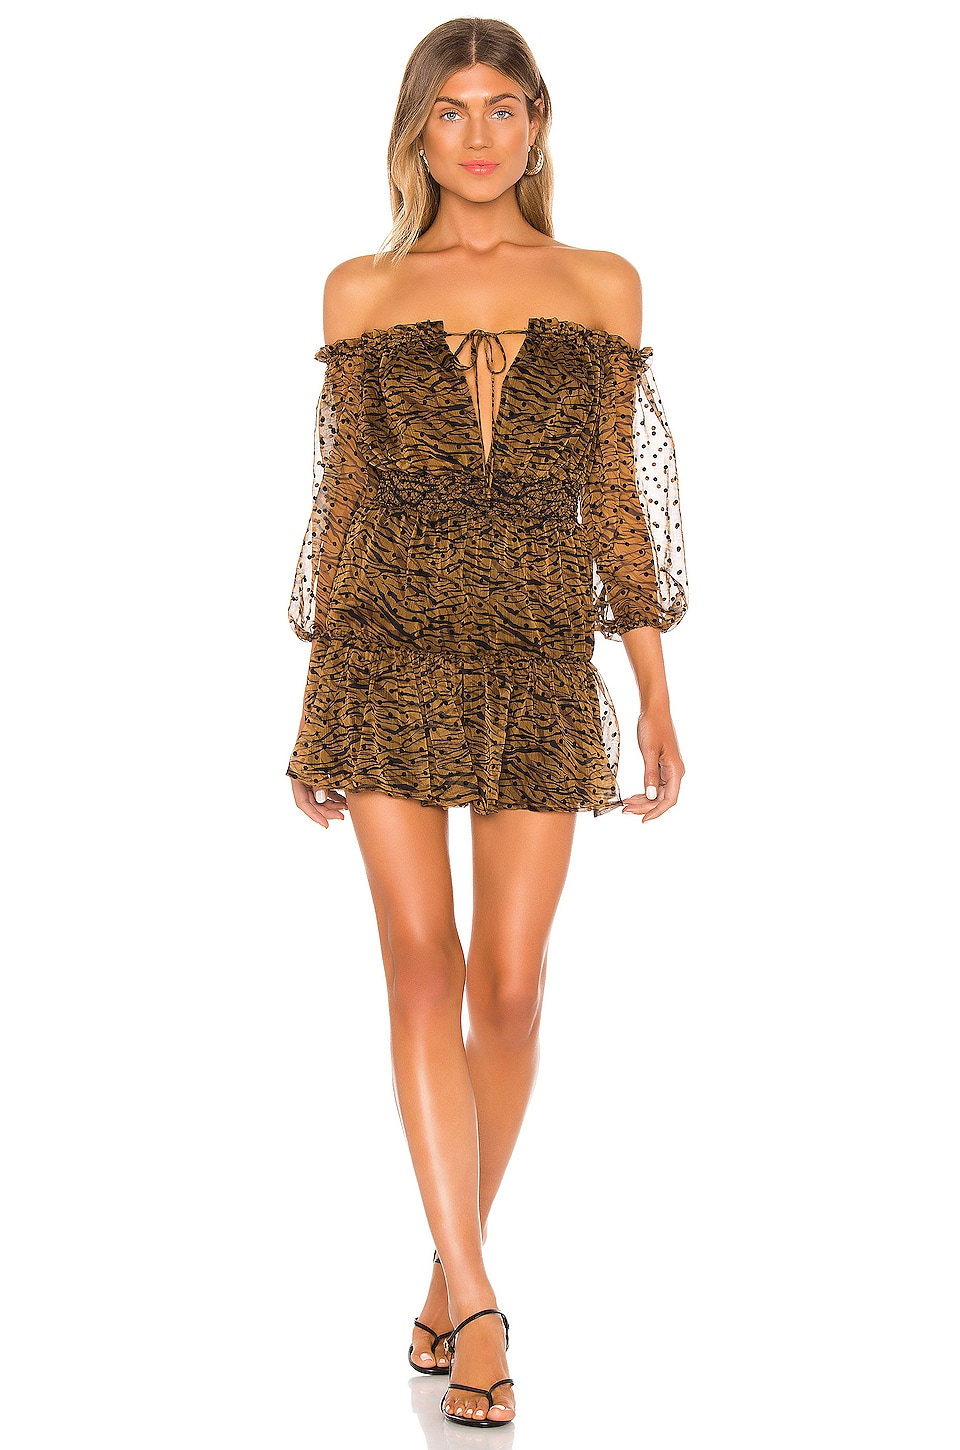 House of Harlow 1960 x REVOLVE Sapphire Mini Dress in Brown Multi